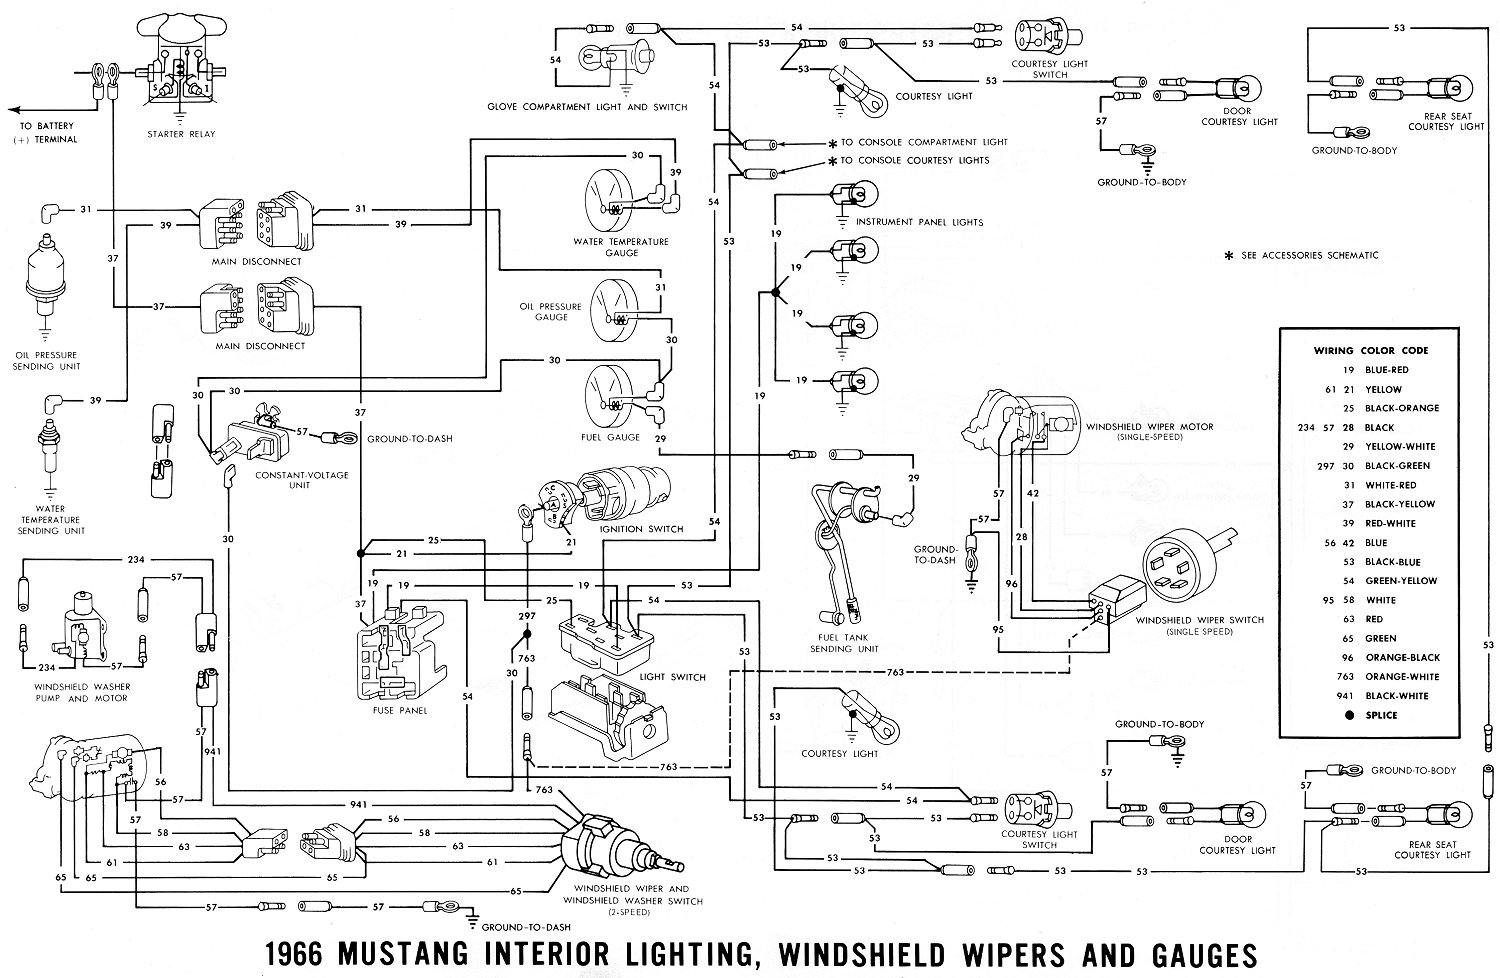 Courtesy Light Wiring Diagram For 1966 Mustang Content Resource Of 1965  Mustang Rear Brake Diagram 1965 Mustang Color Wiring Diagram